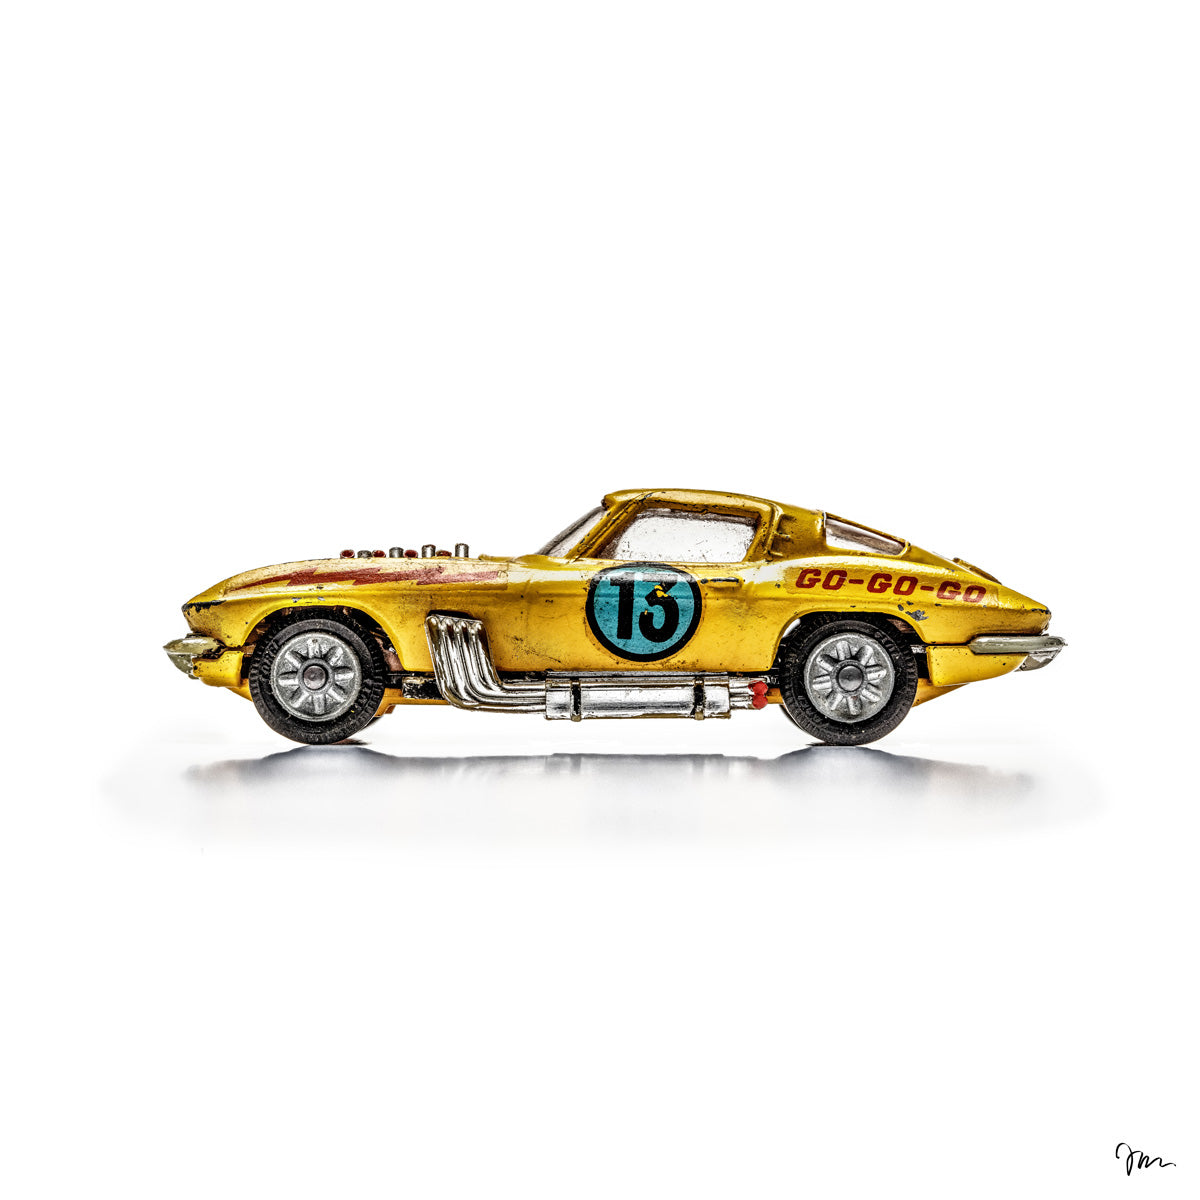 La Corvette Sting Ray #13